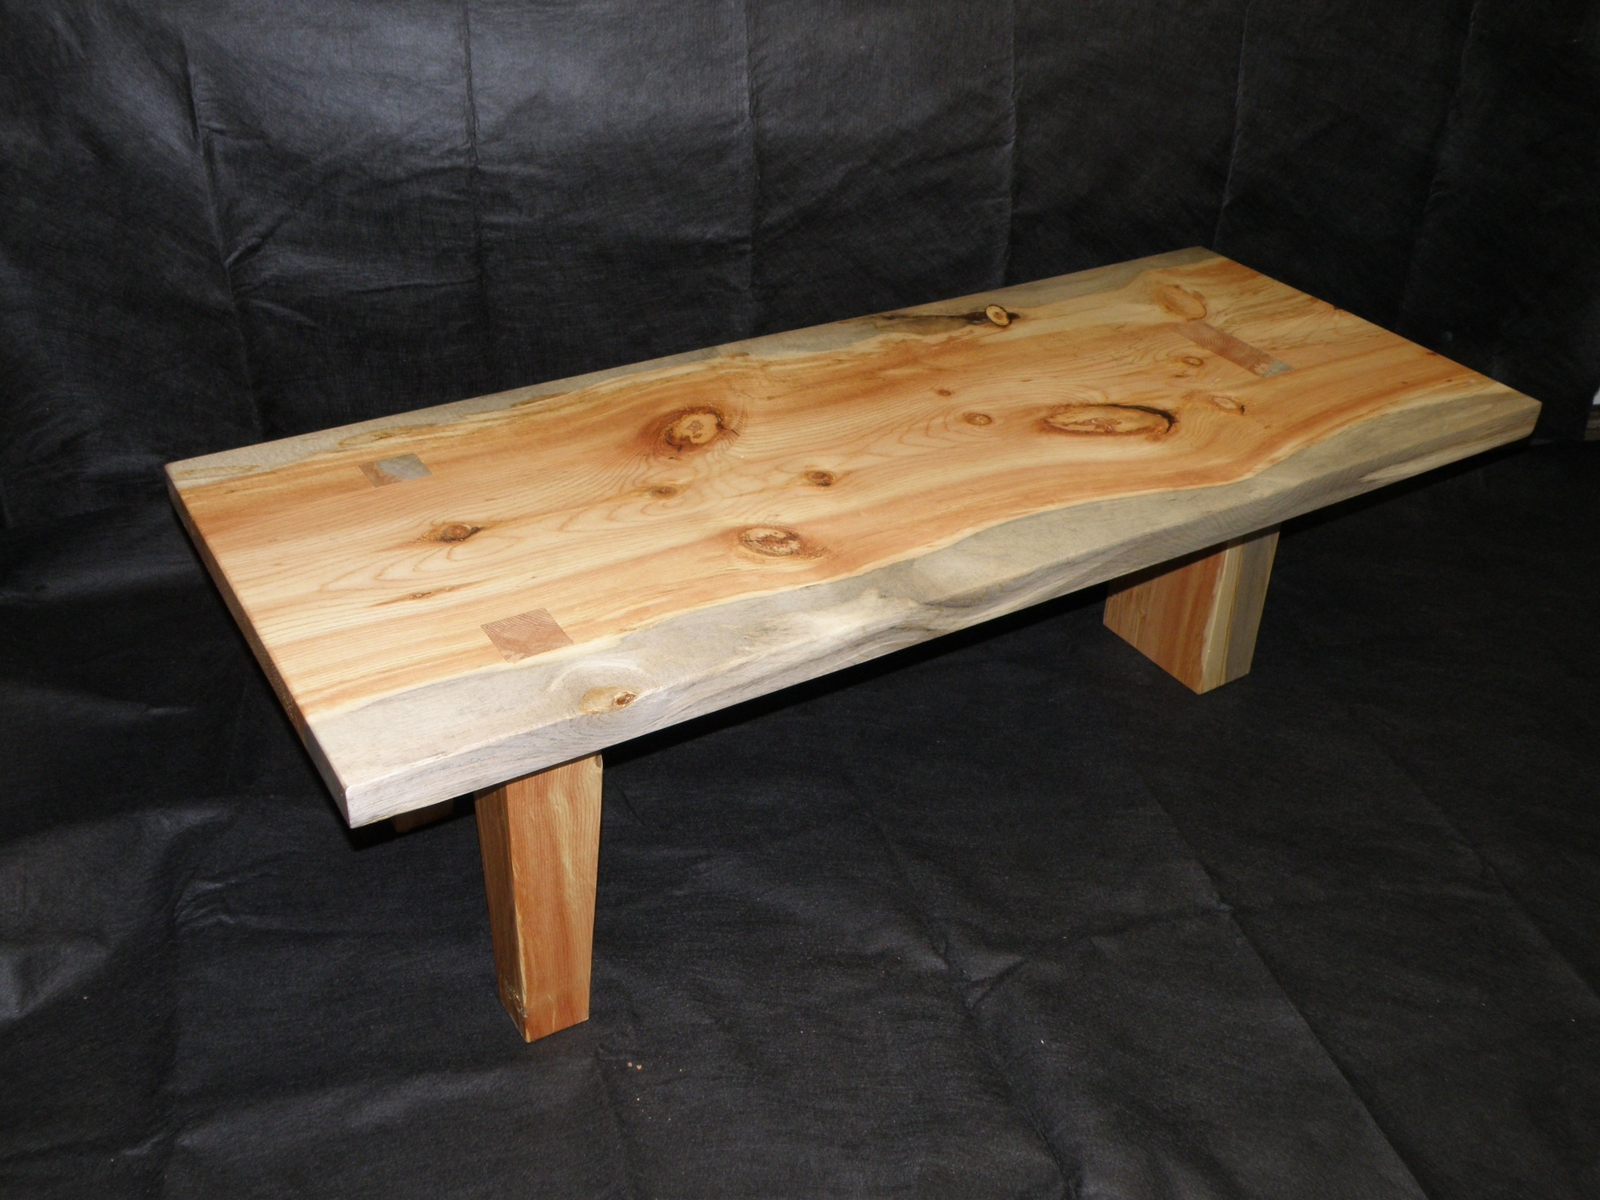 Knotty Pine Table With Clear Finish